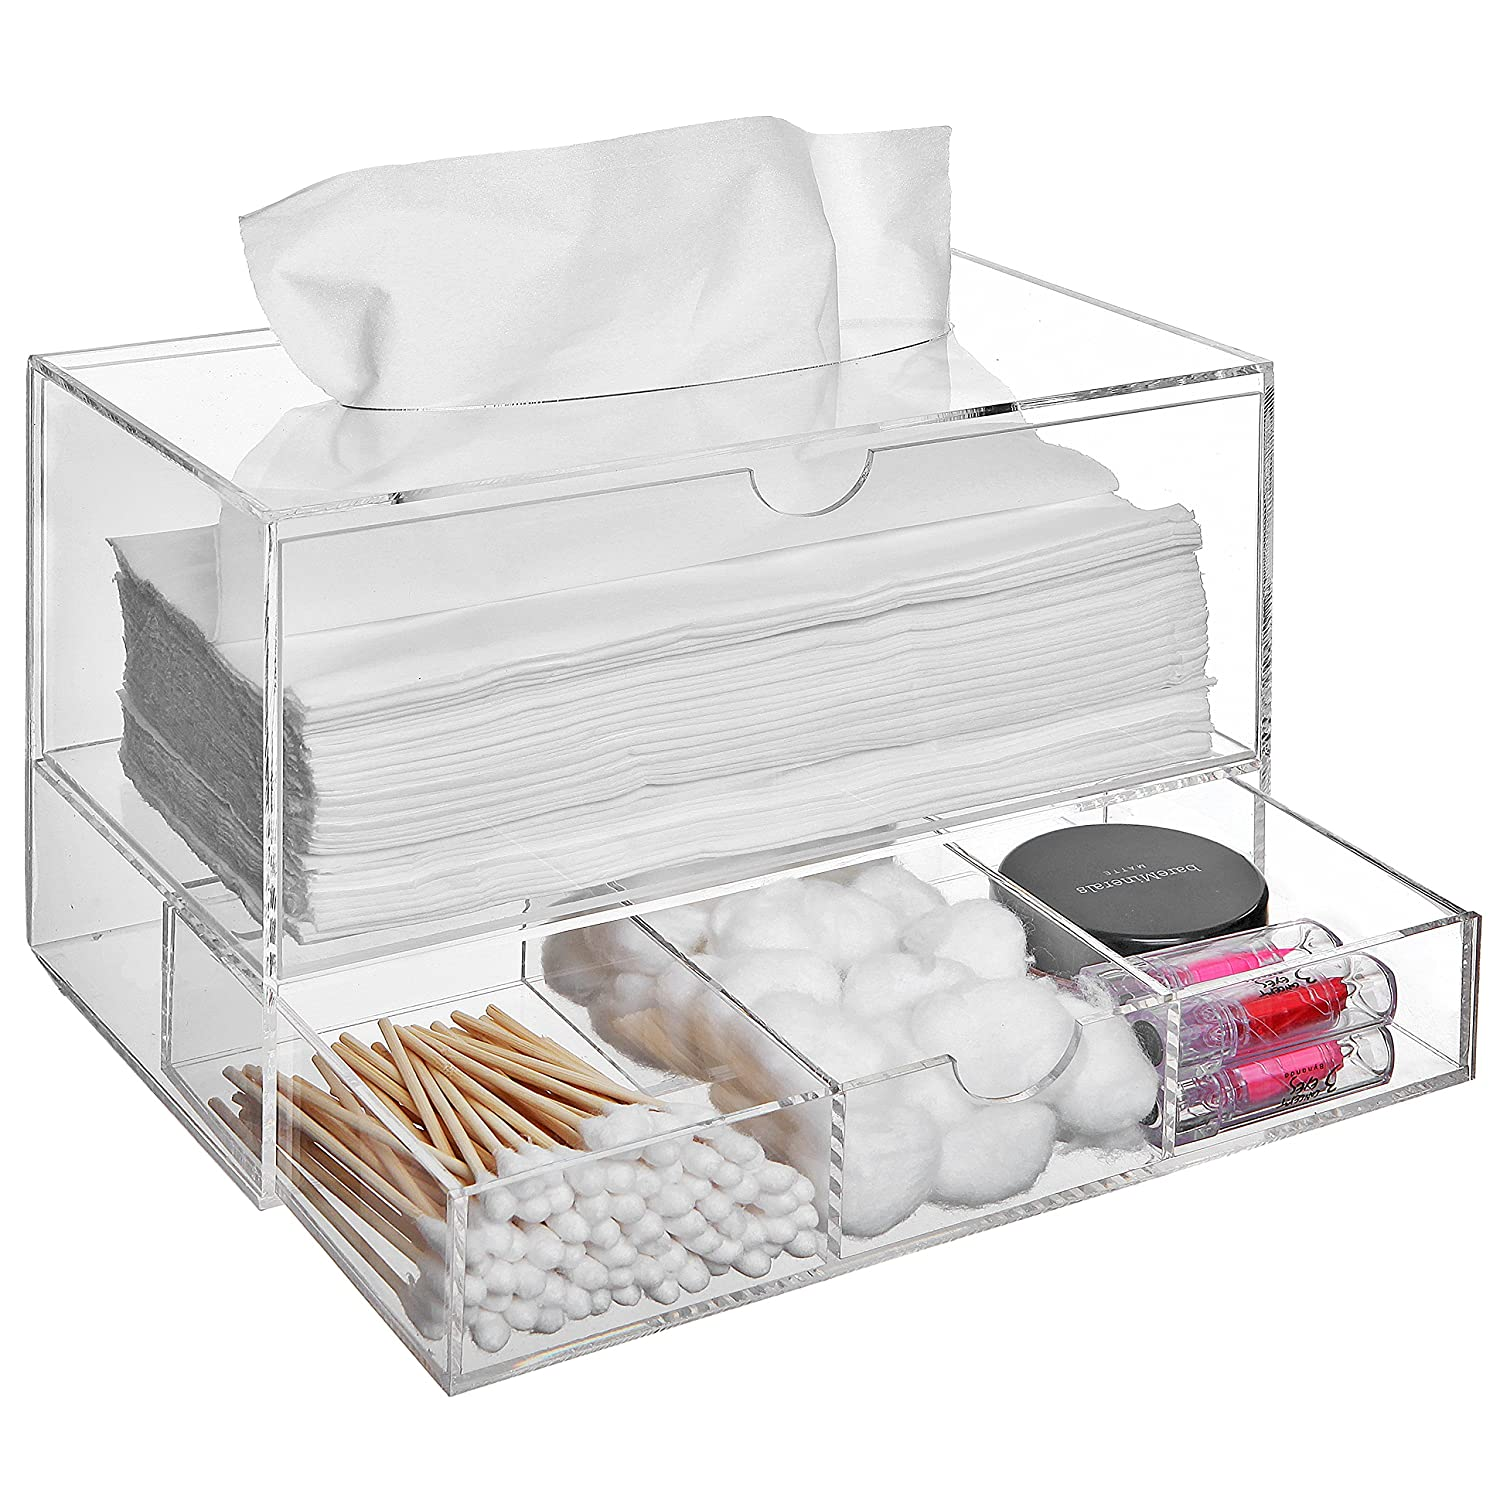 Amazoncom Modern Clear Acrylic Countertop Pull Out Storage - Cosmetic organizer countertop